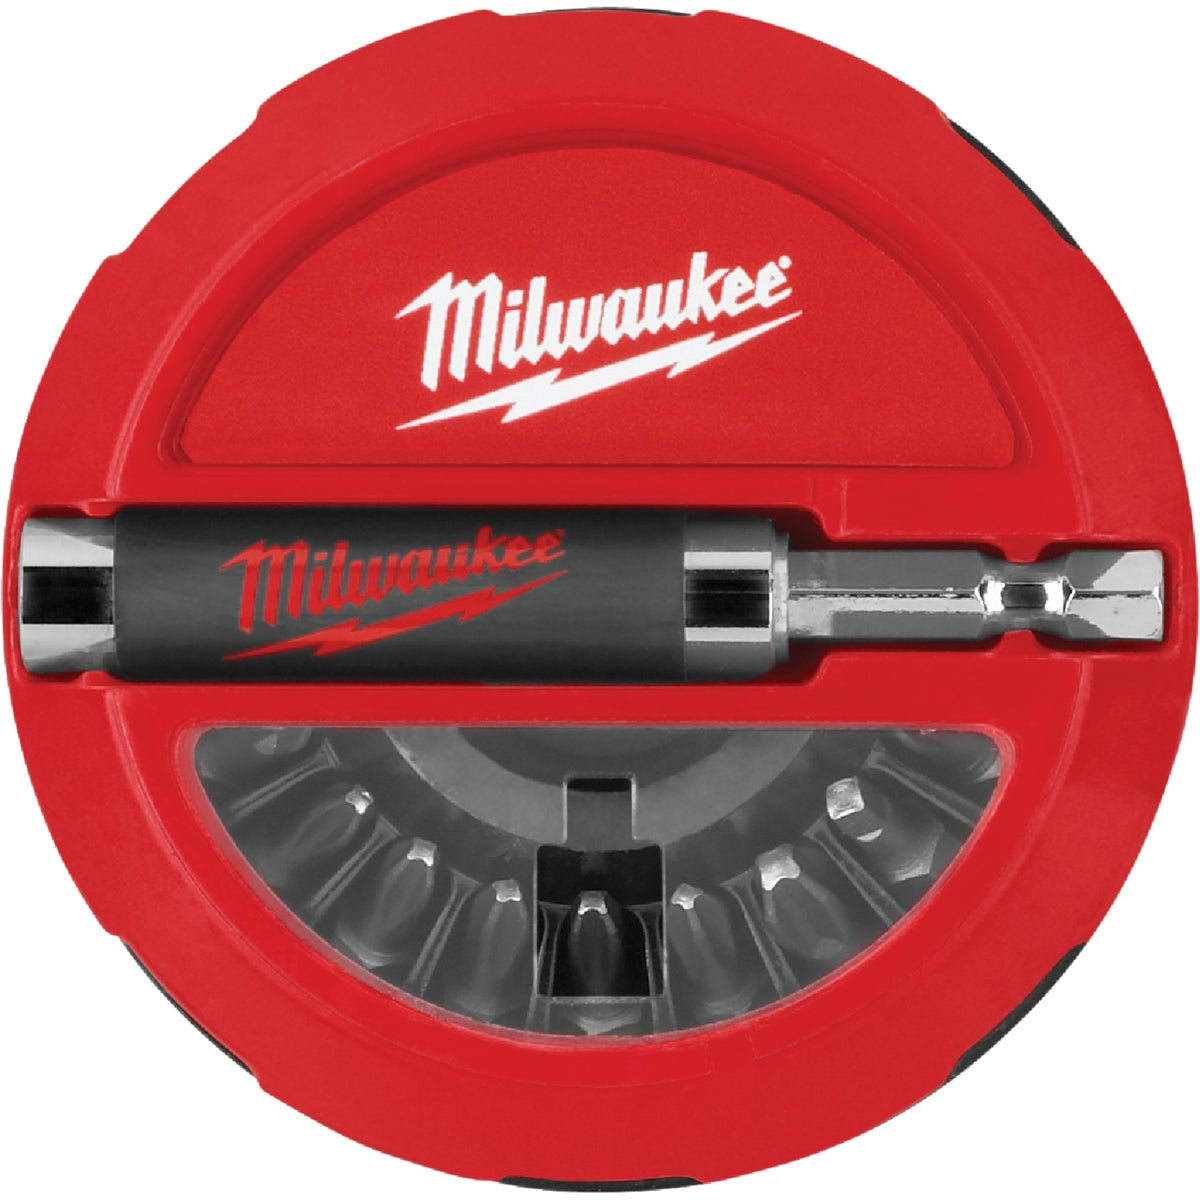 20PC INSERT BIT PUCK - 48321700 by Milwaukee Accessory